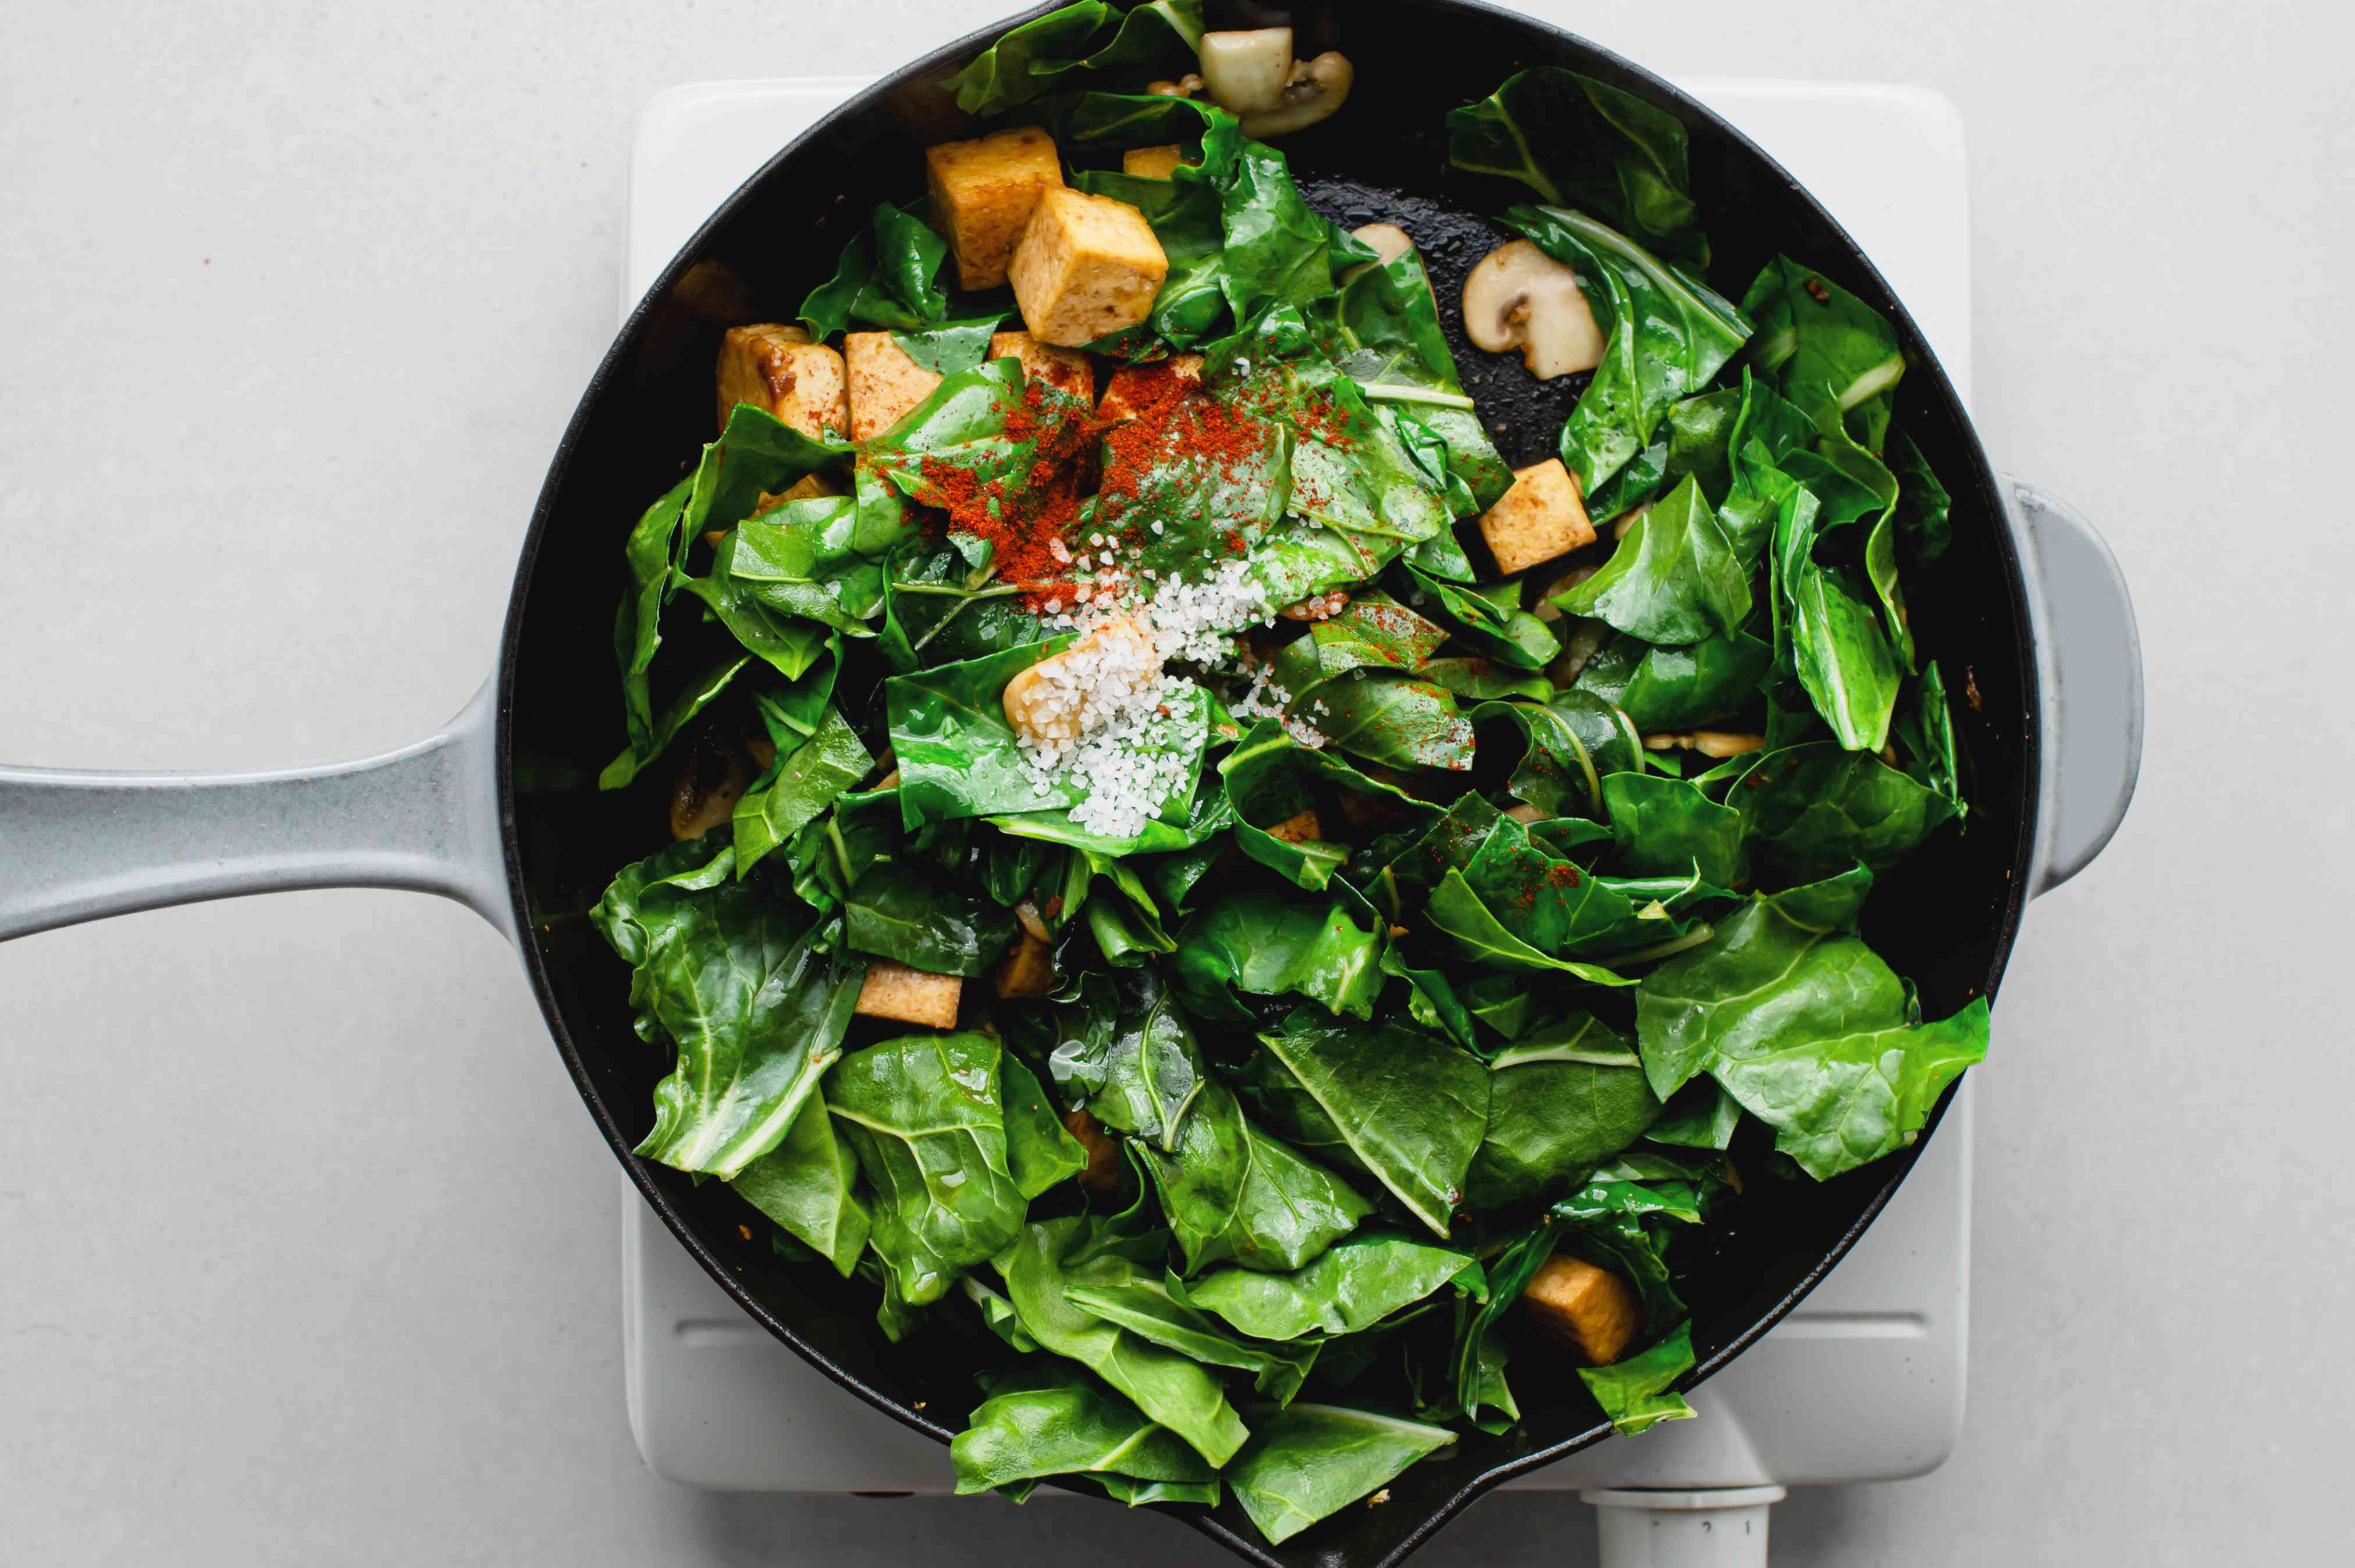 salt and cayenne pepper added to Swiss Chard and tofu in the skillet